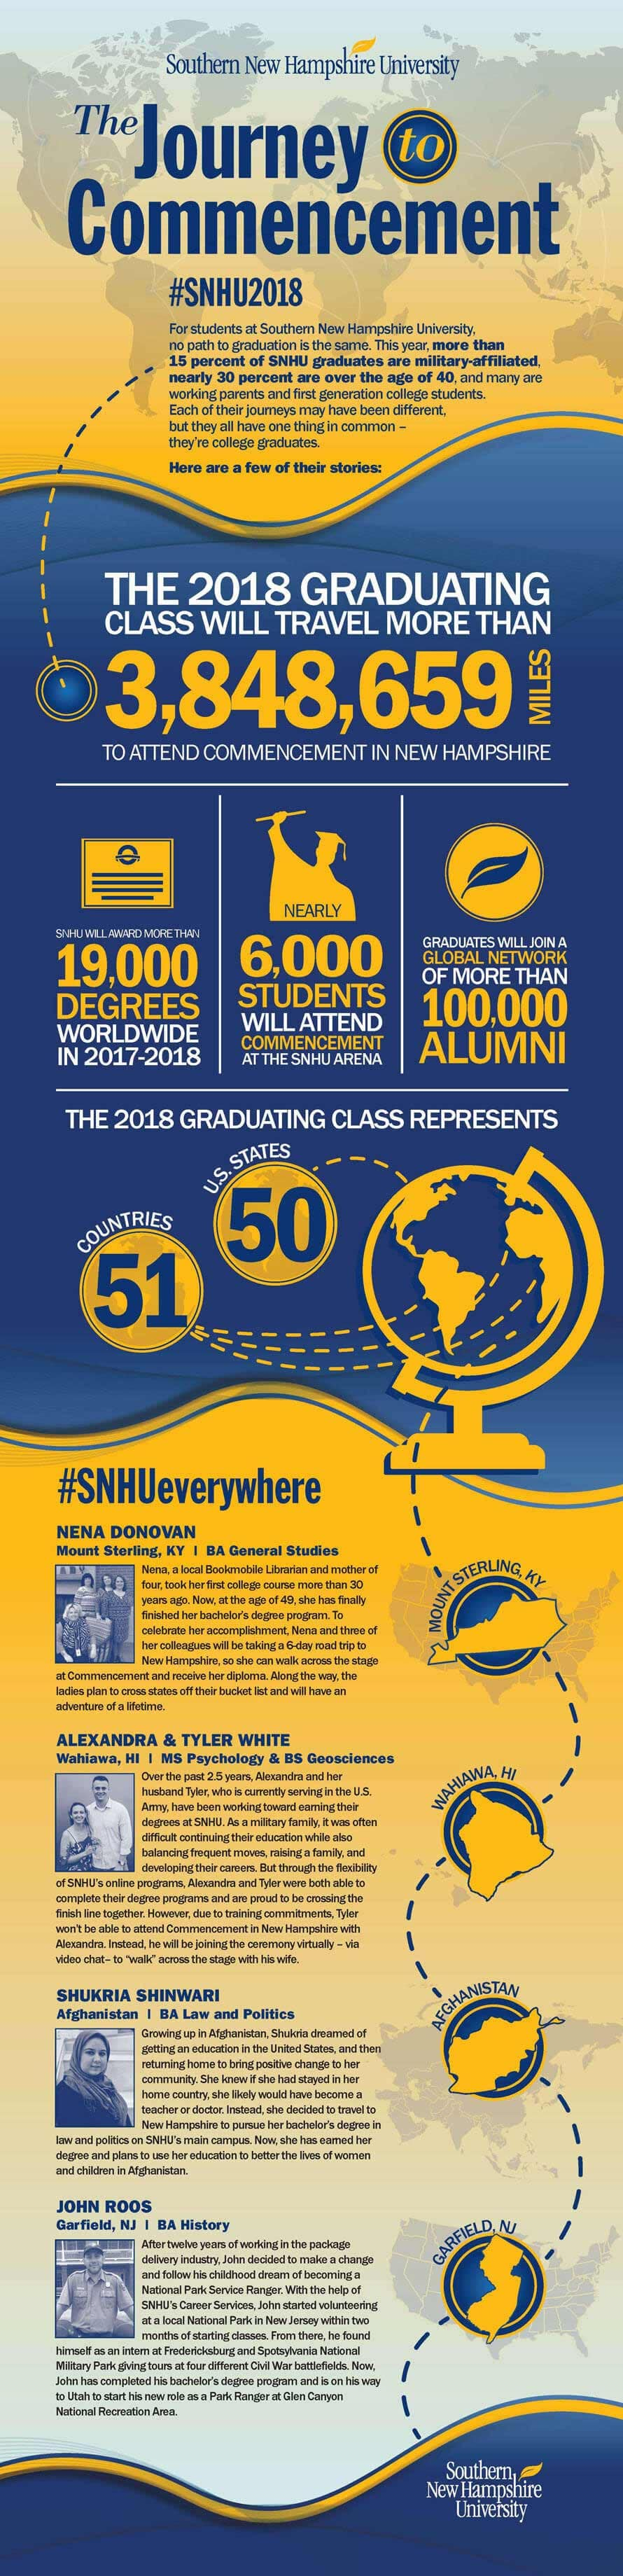 JourneytoCommencementInfographic